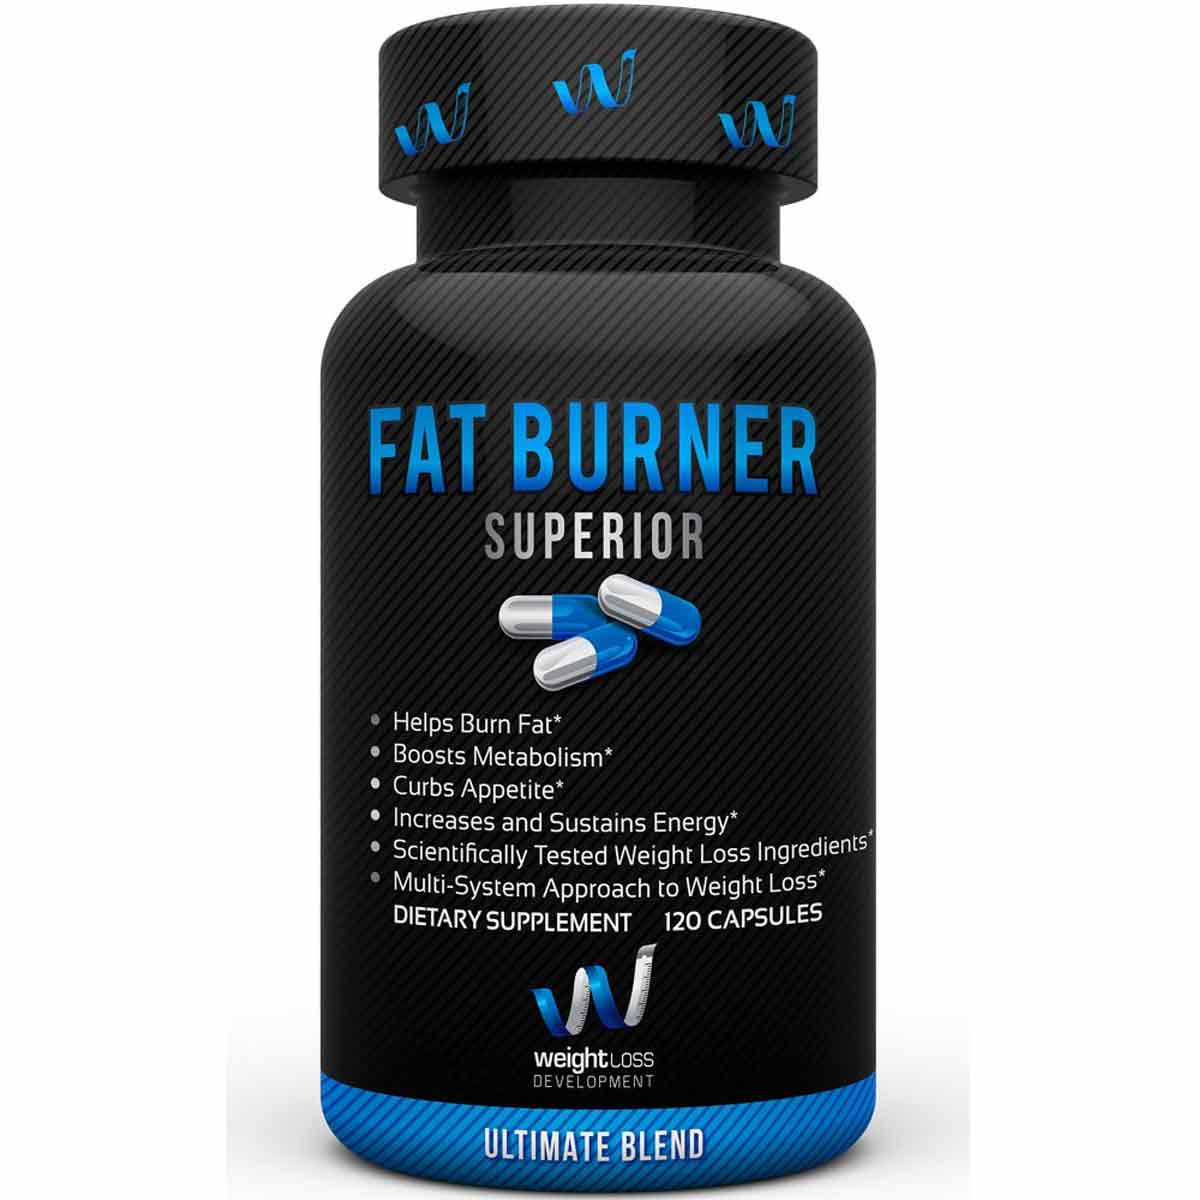 Fat burner xtreme gold review